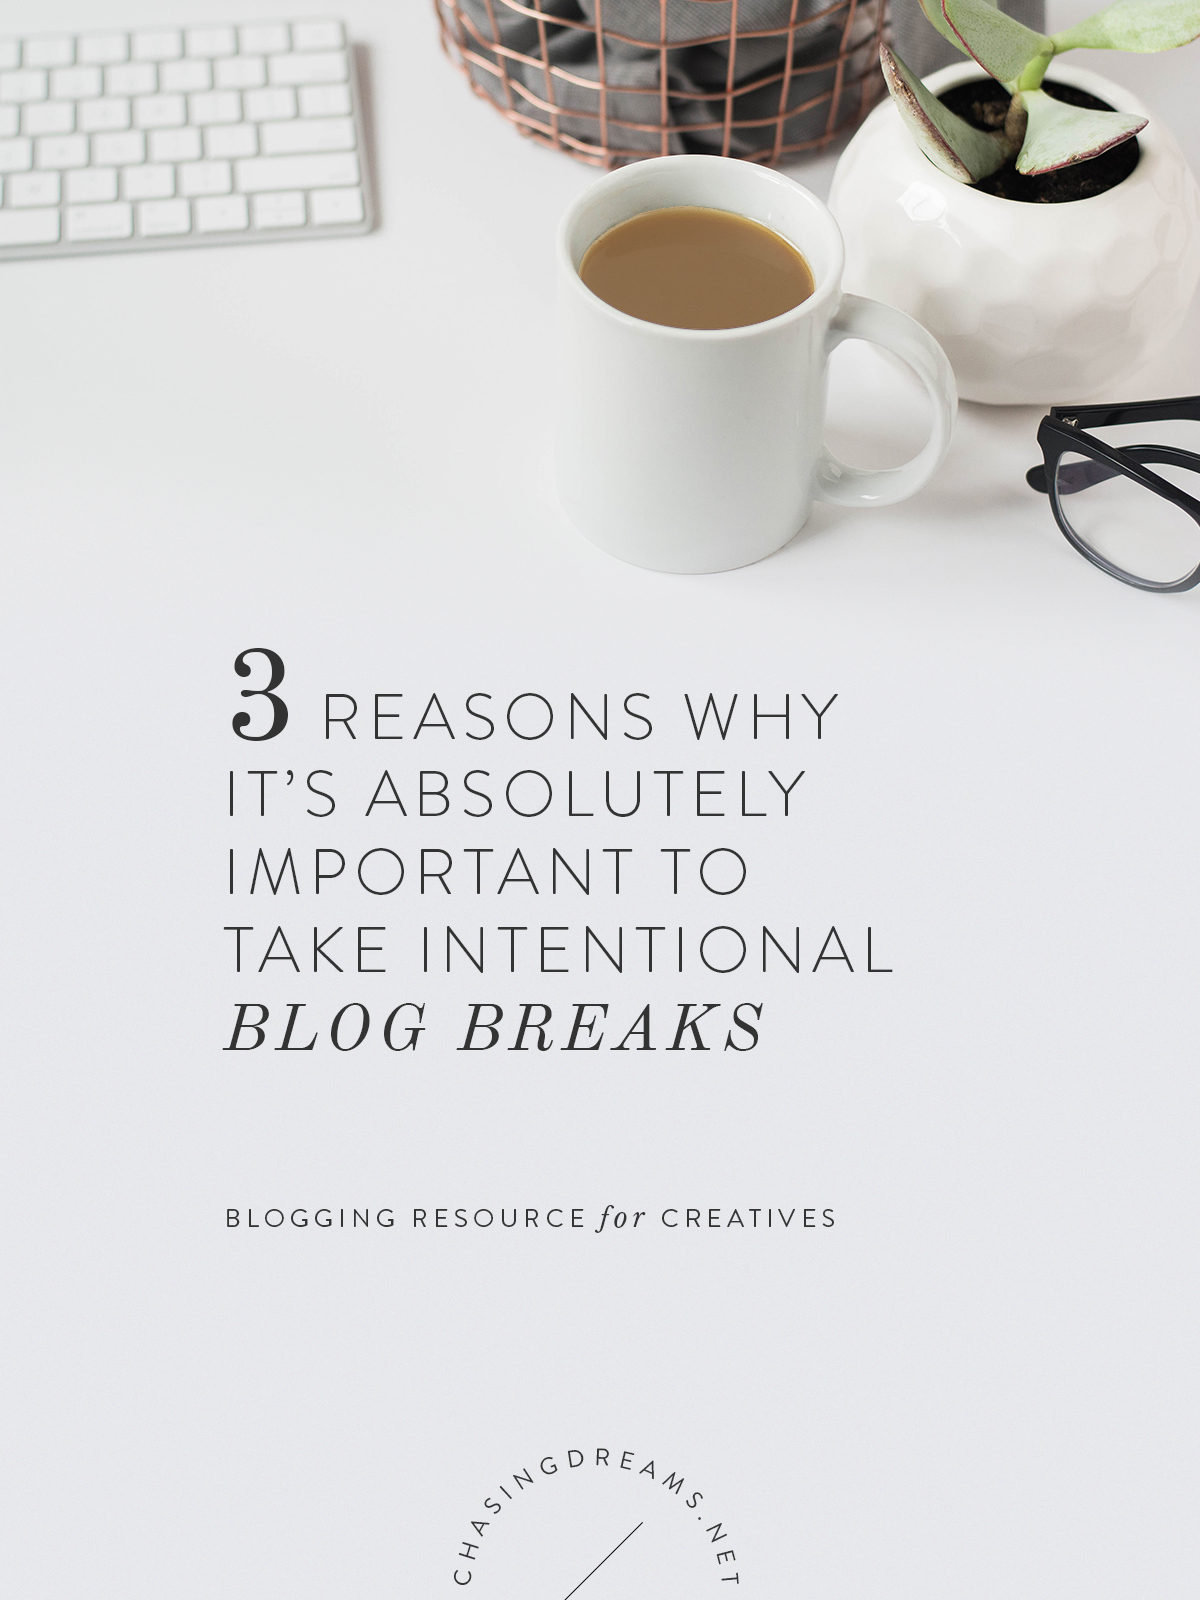 Importance of taking blogging breaks